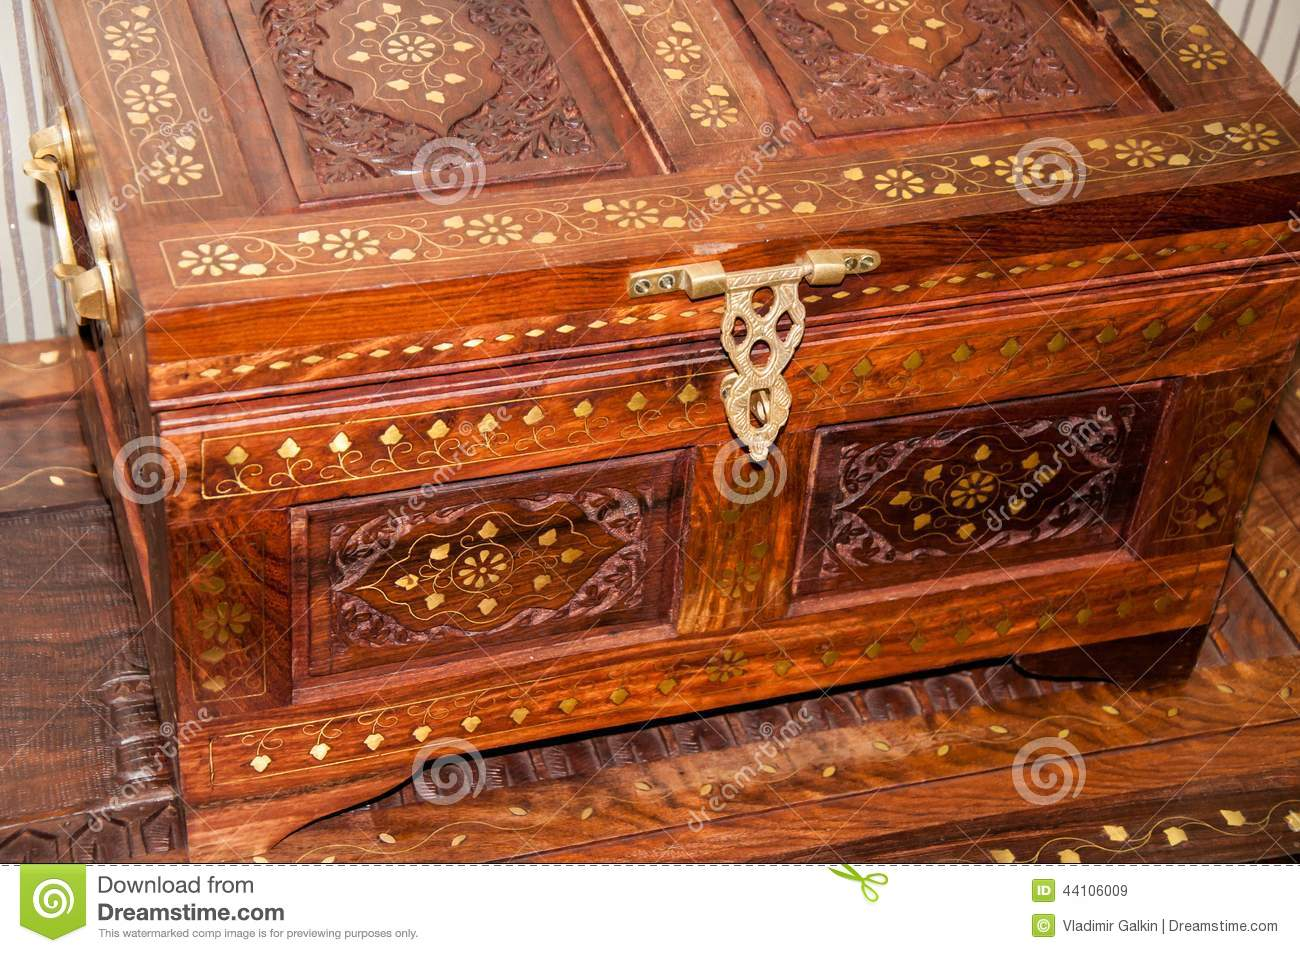 Moroccan pattern on household items